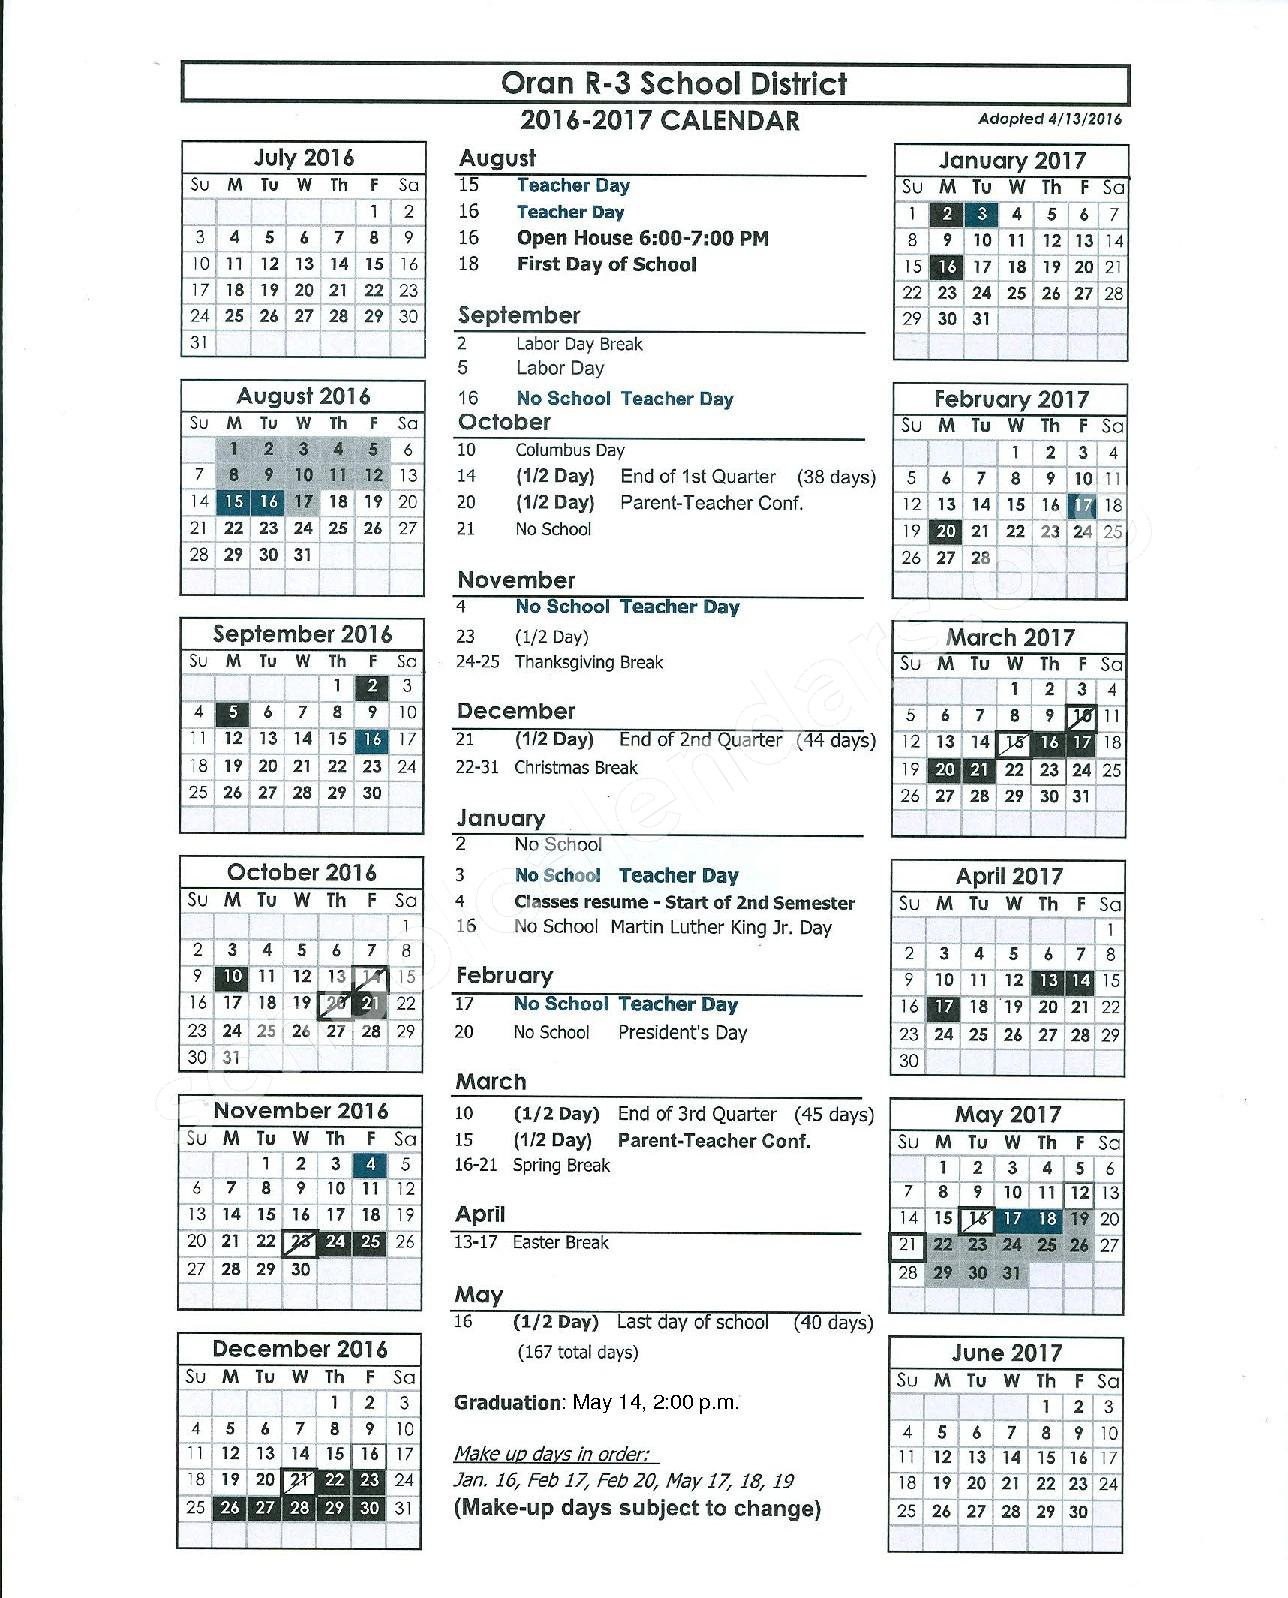 2016 - 2017 School Calendar – Oran R-III School District – page 1